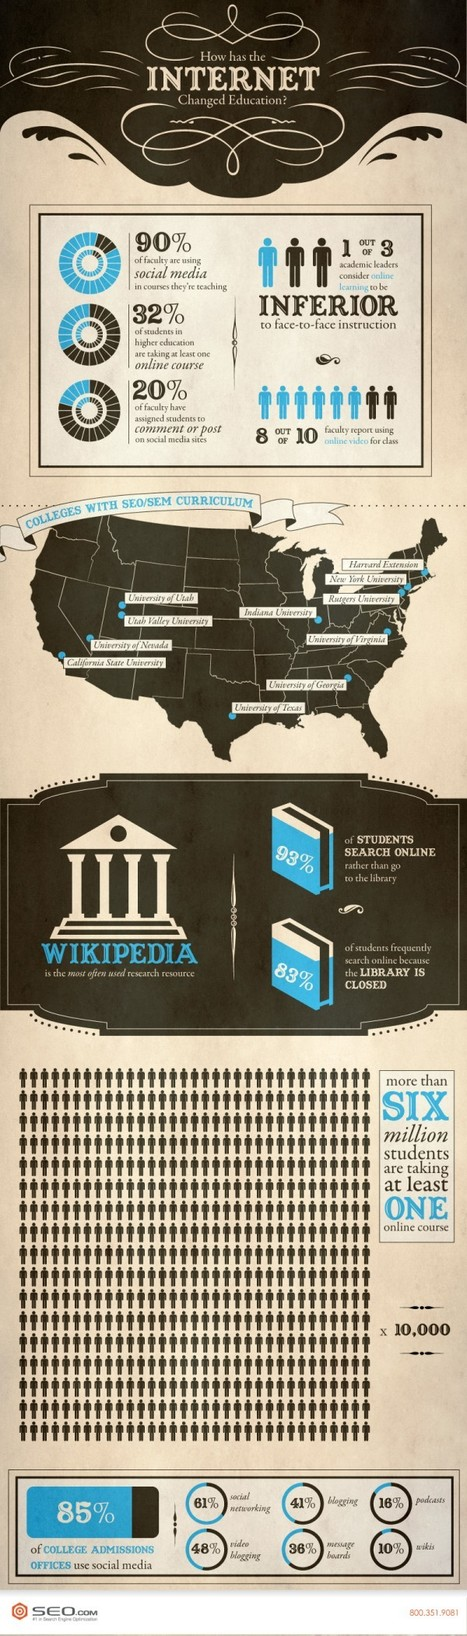 Case Study: How Wikipedia has changed Education from Internet [Infographic] | Enhanced Learning | Scoop.it